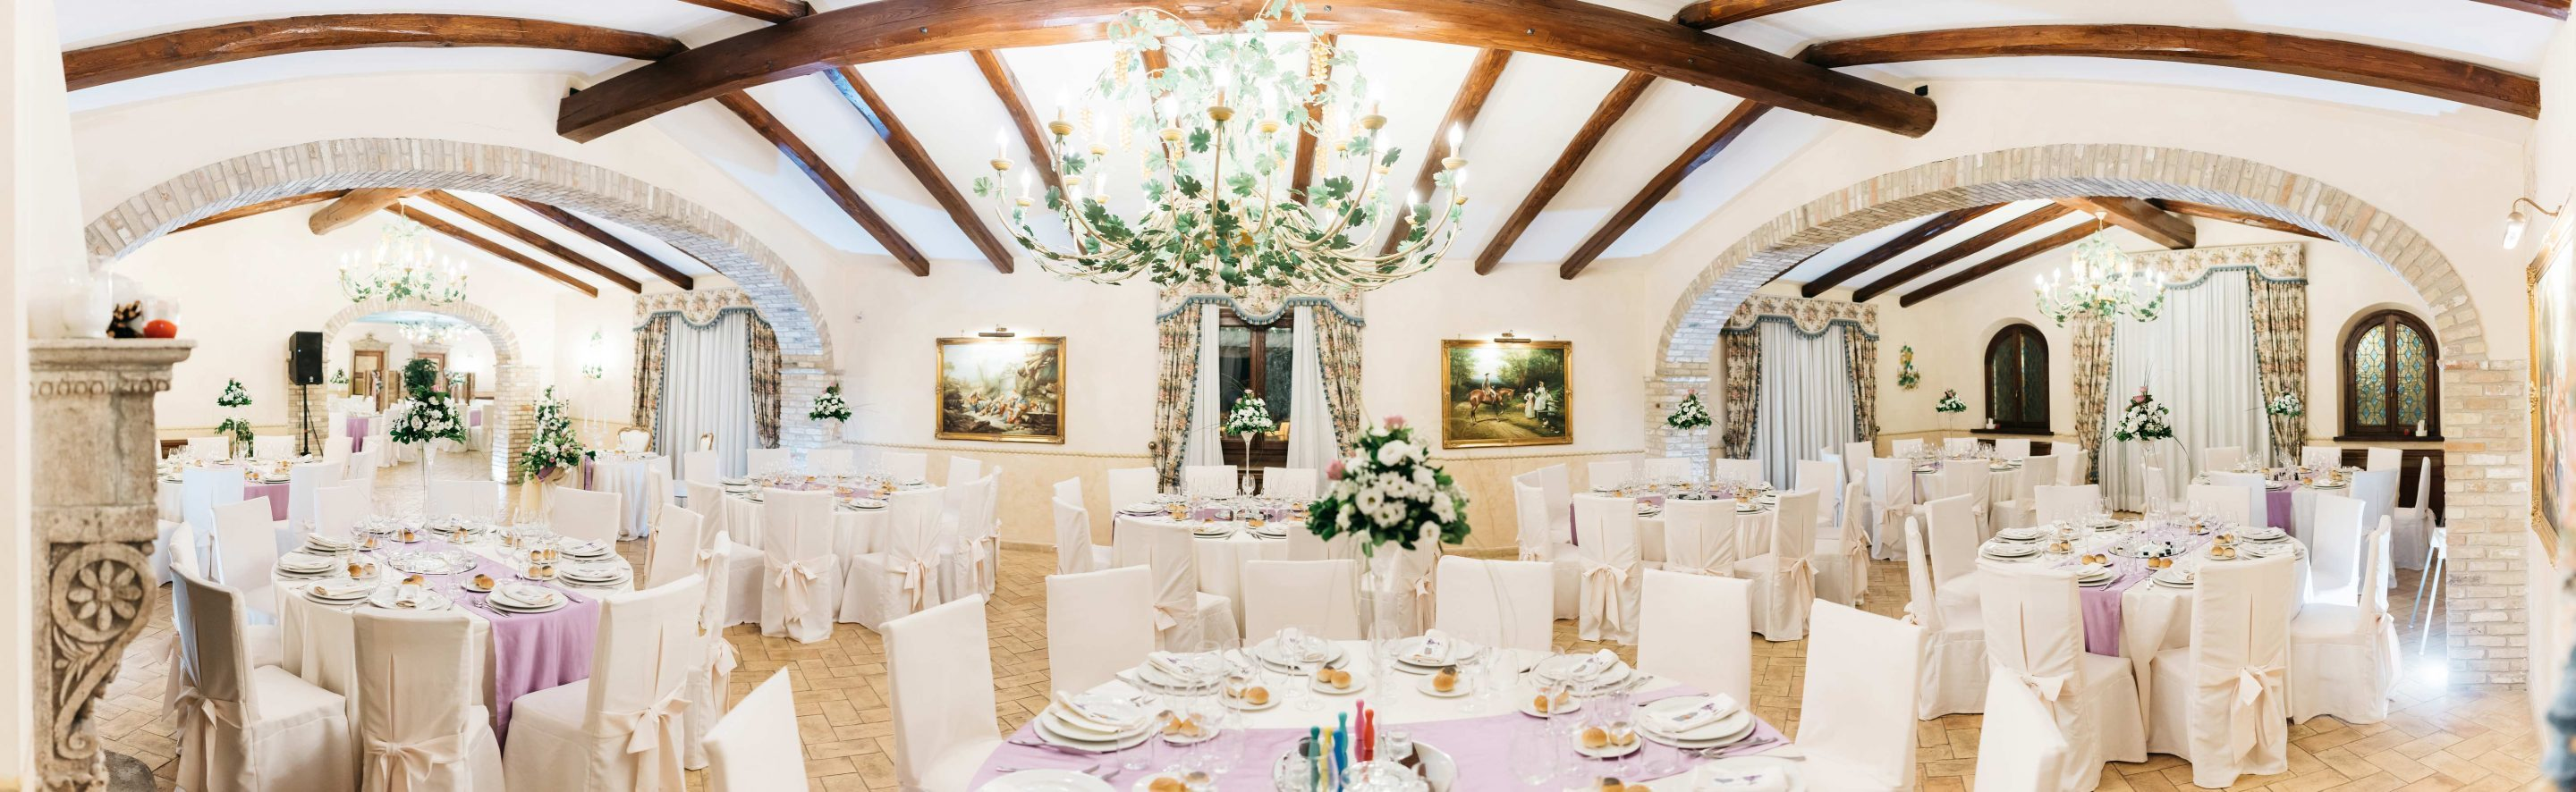 Destination-Wedding-Italy-Reportage-Photographer-Reception